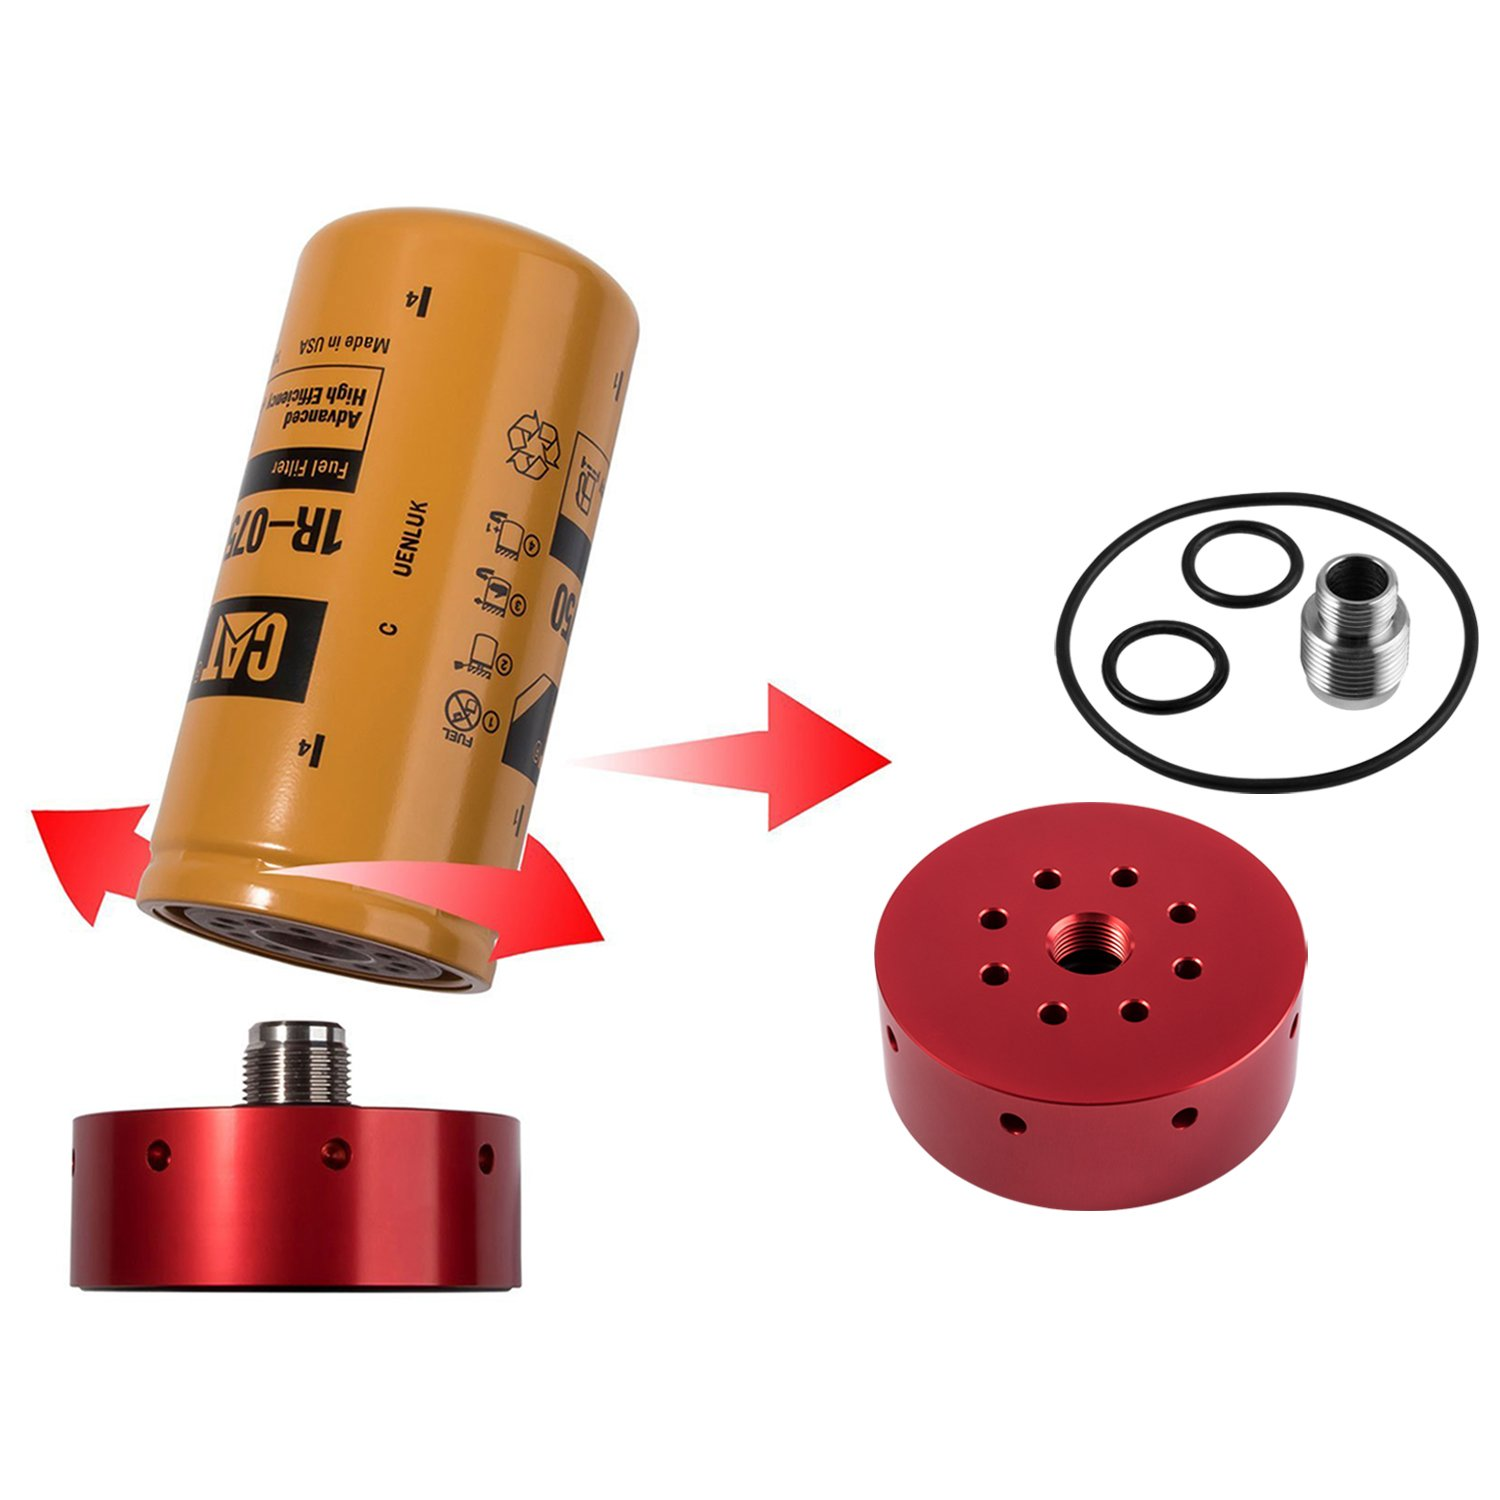 Amazon.com: Opall CAT Fuel Filter Adapter for Chevy/GMC Duramax Diesel 2001  2002 2003 2004 2005 2006 2007 2008 2009 2010 2011 2012 2013 2014 2015 2016  ...